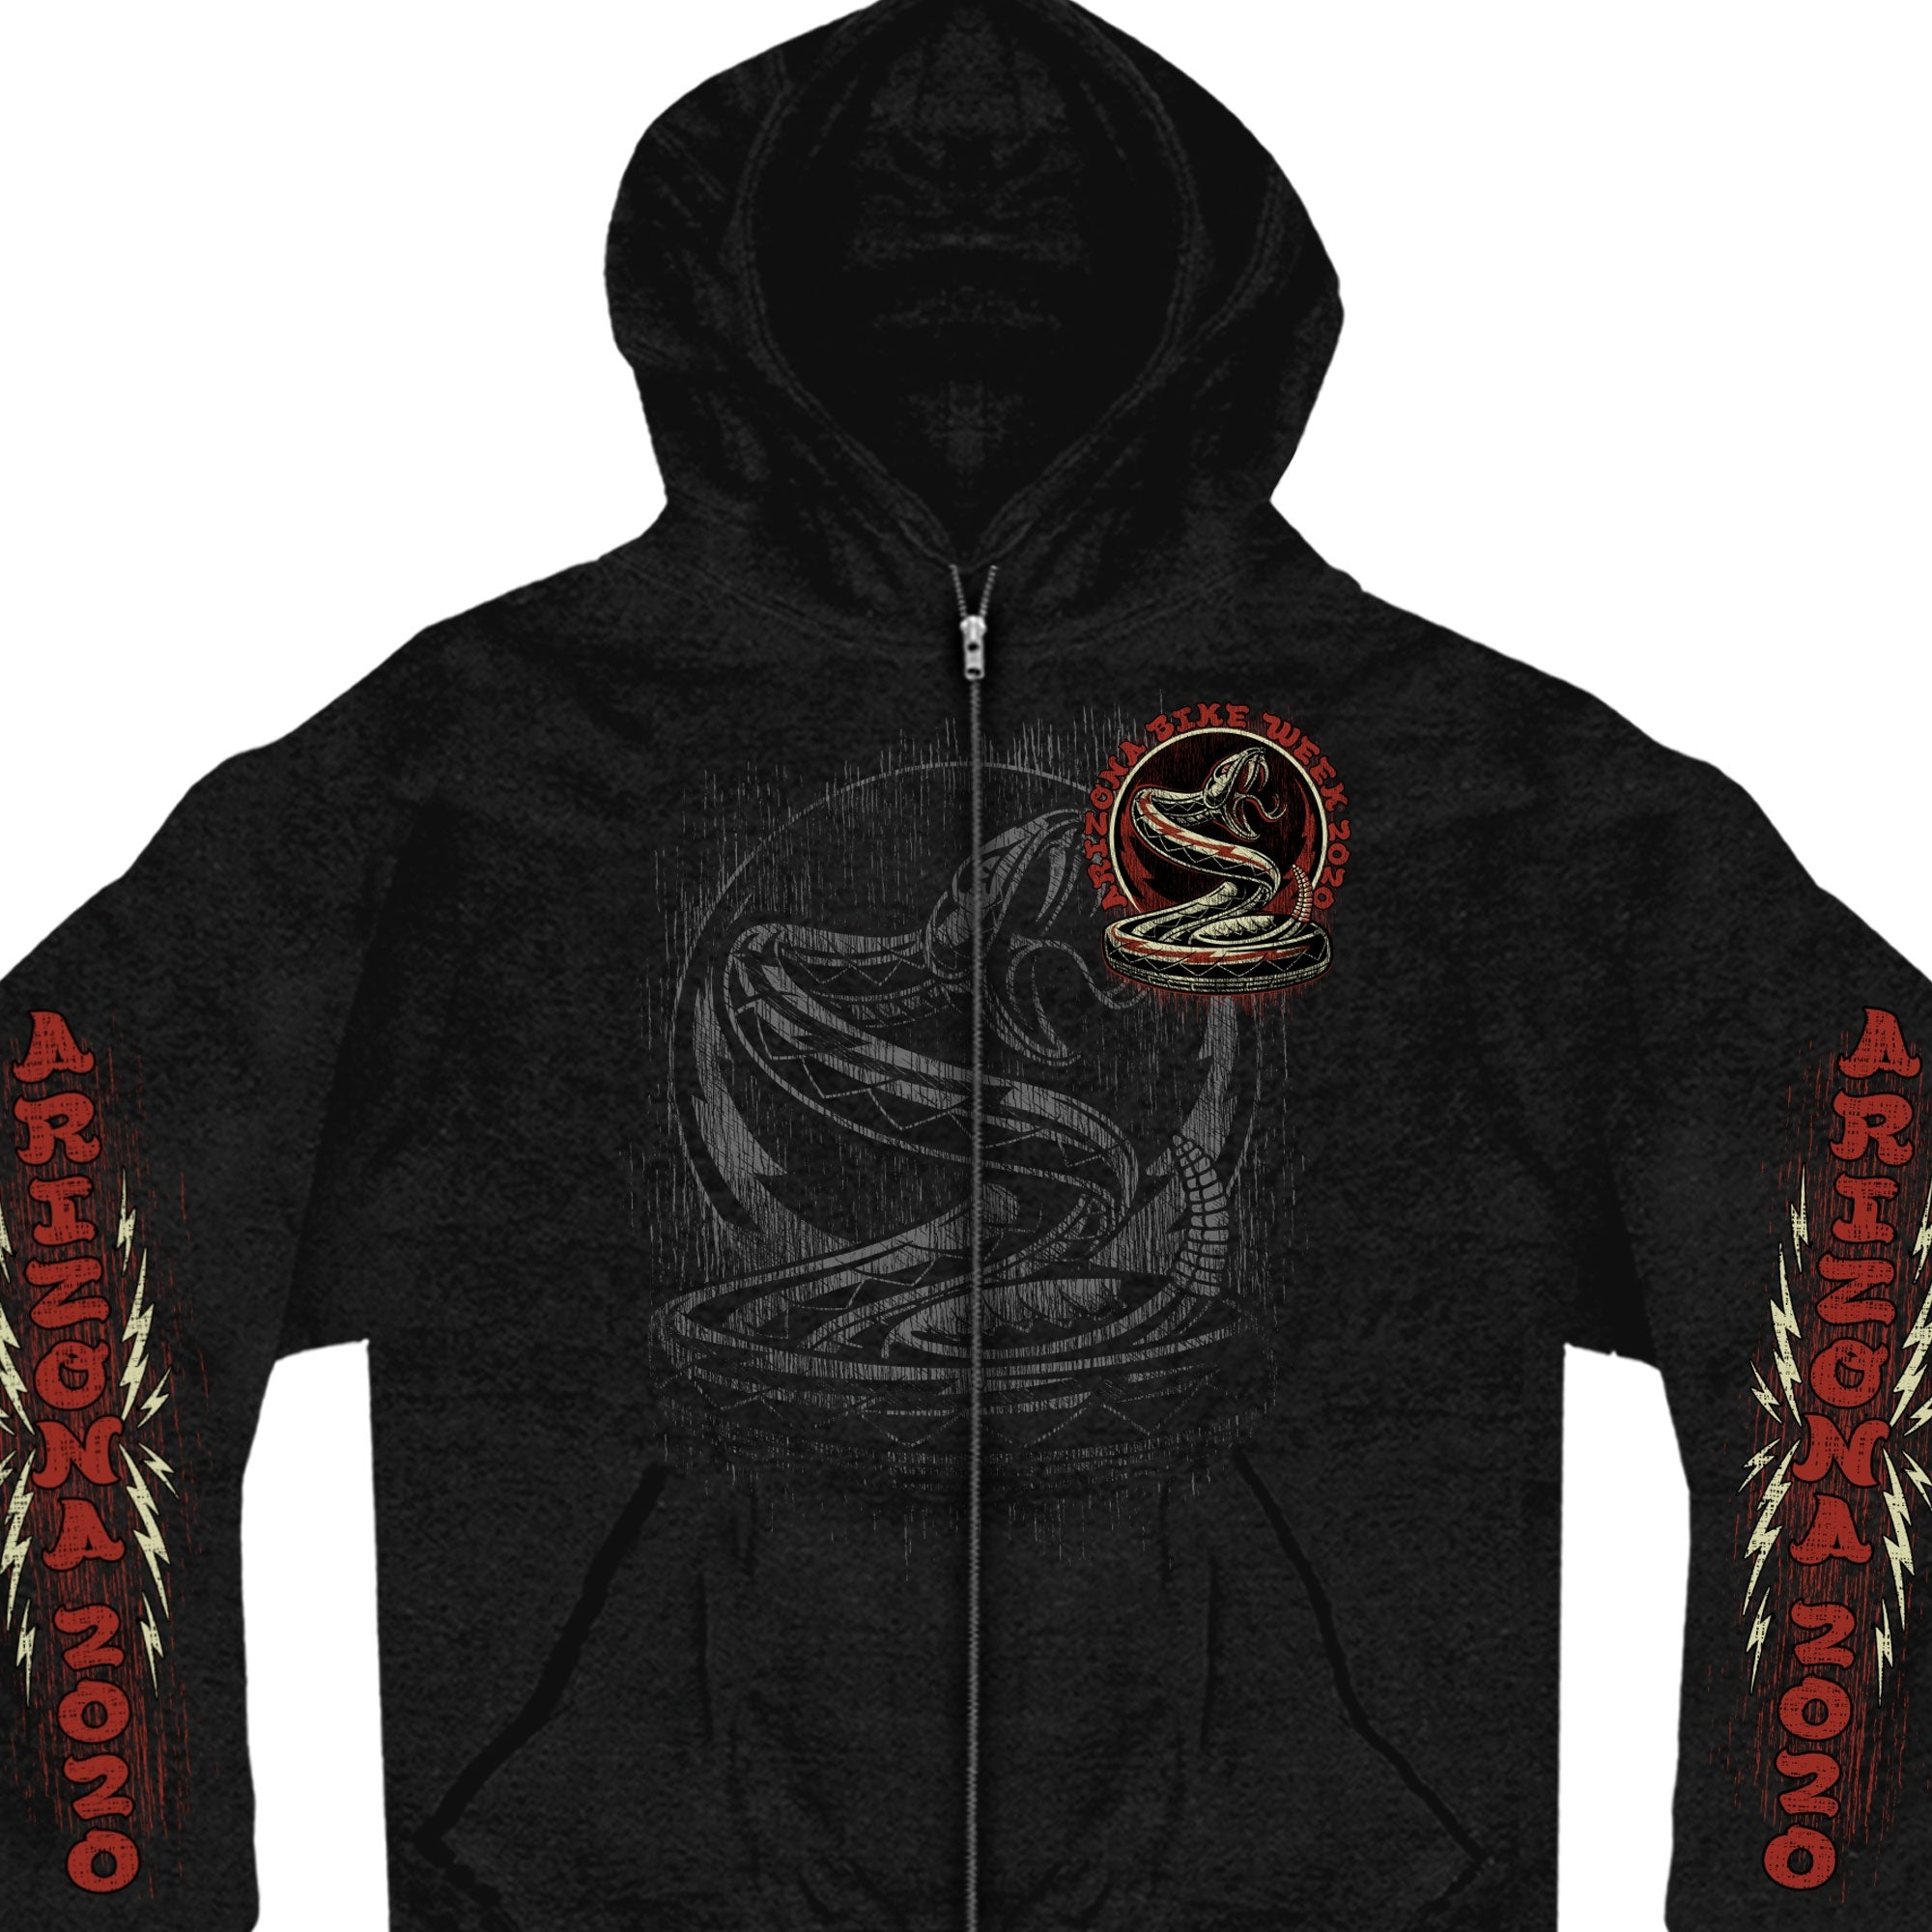 Official 2020 Arizona Bike Week Rattler Emblem Zip Up Hooded Sweatshirt